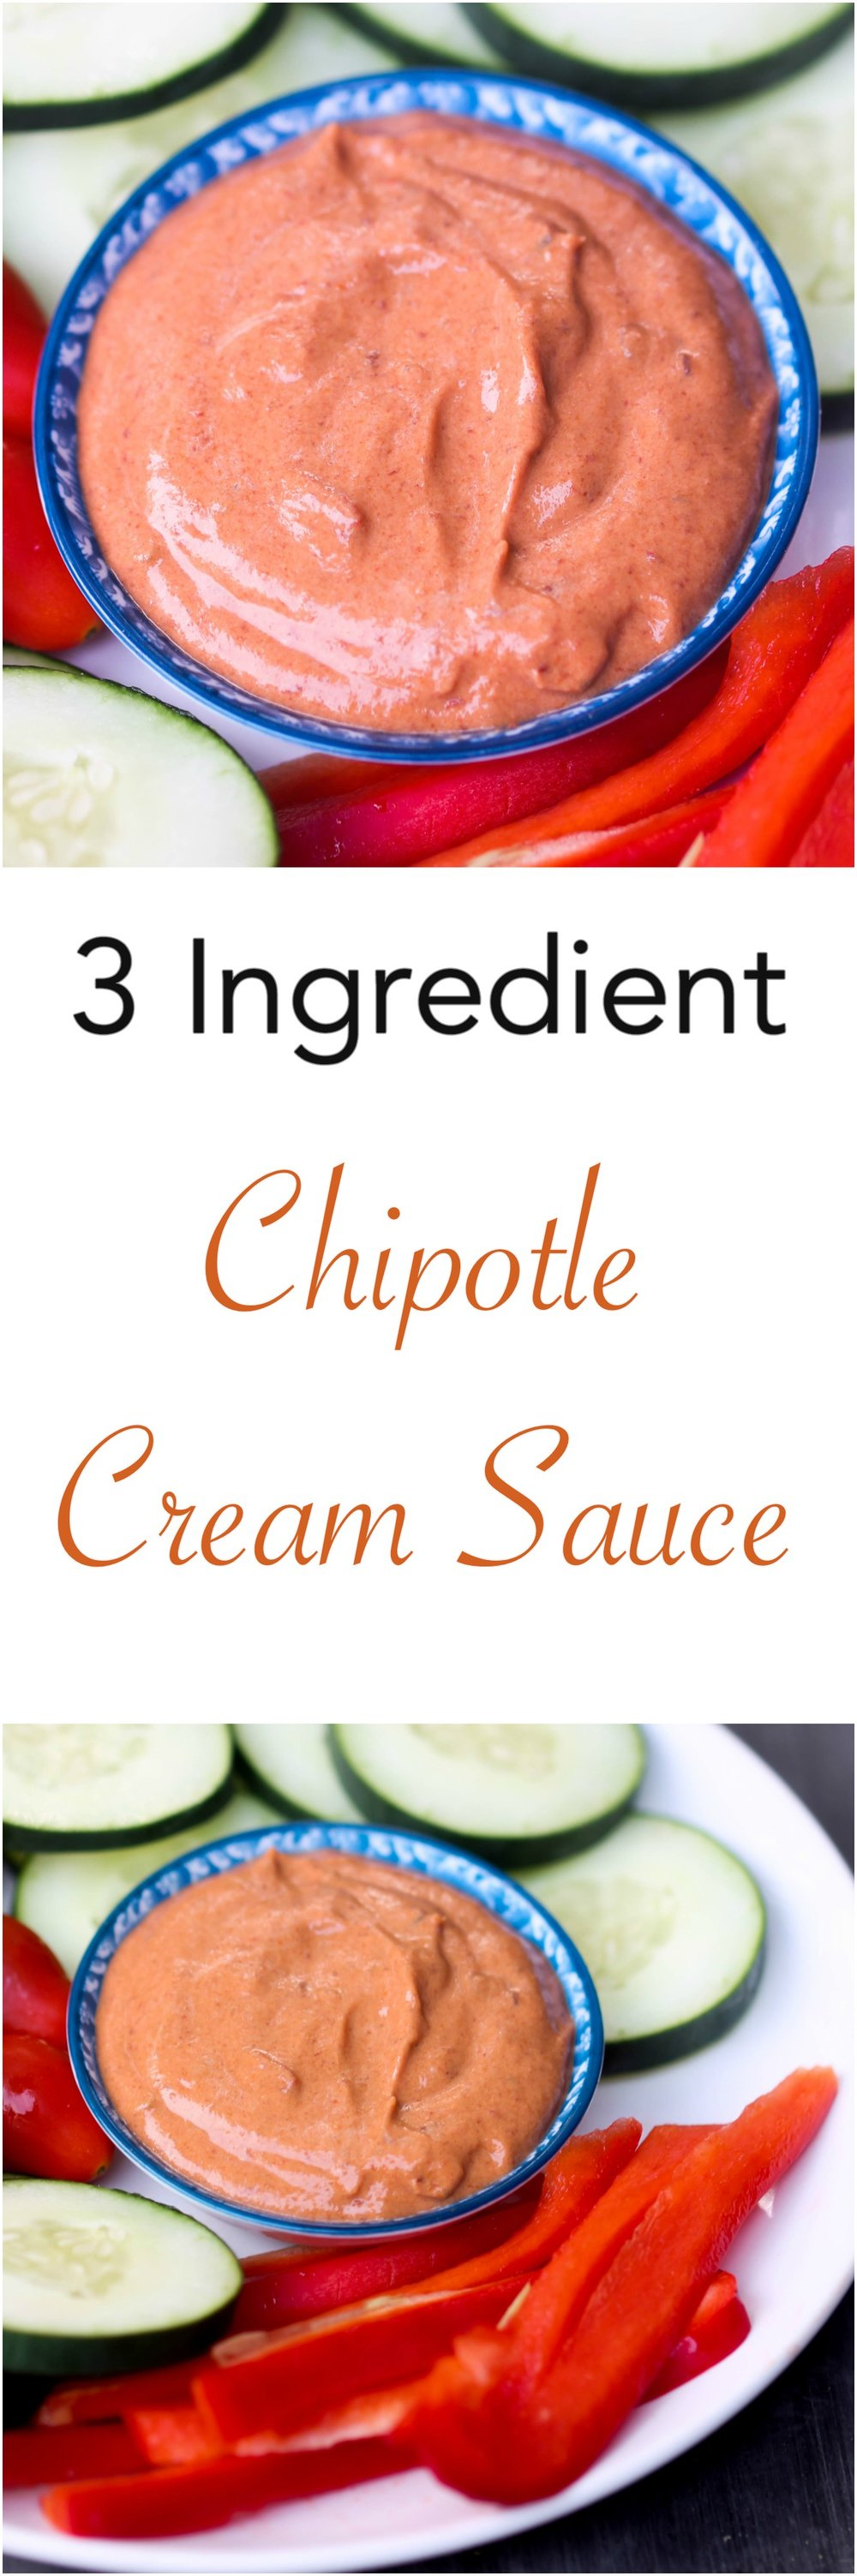 3 Ingredient Chipotle Cream Sauce is a spicy, creamy sauce that can be used as salad dressing, pasta sauce, or as a dip.